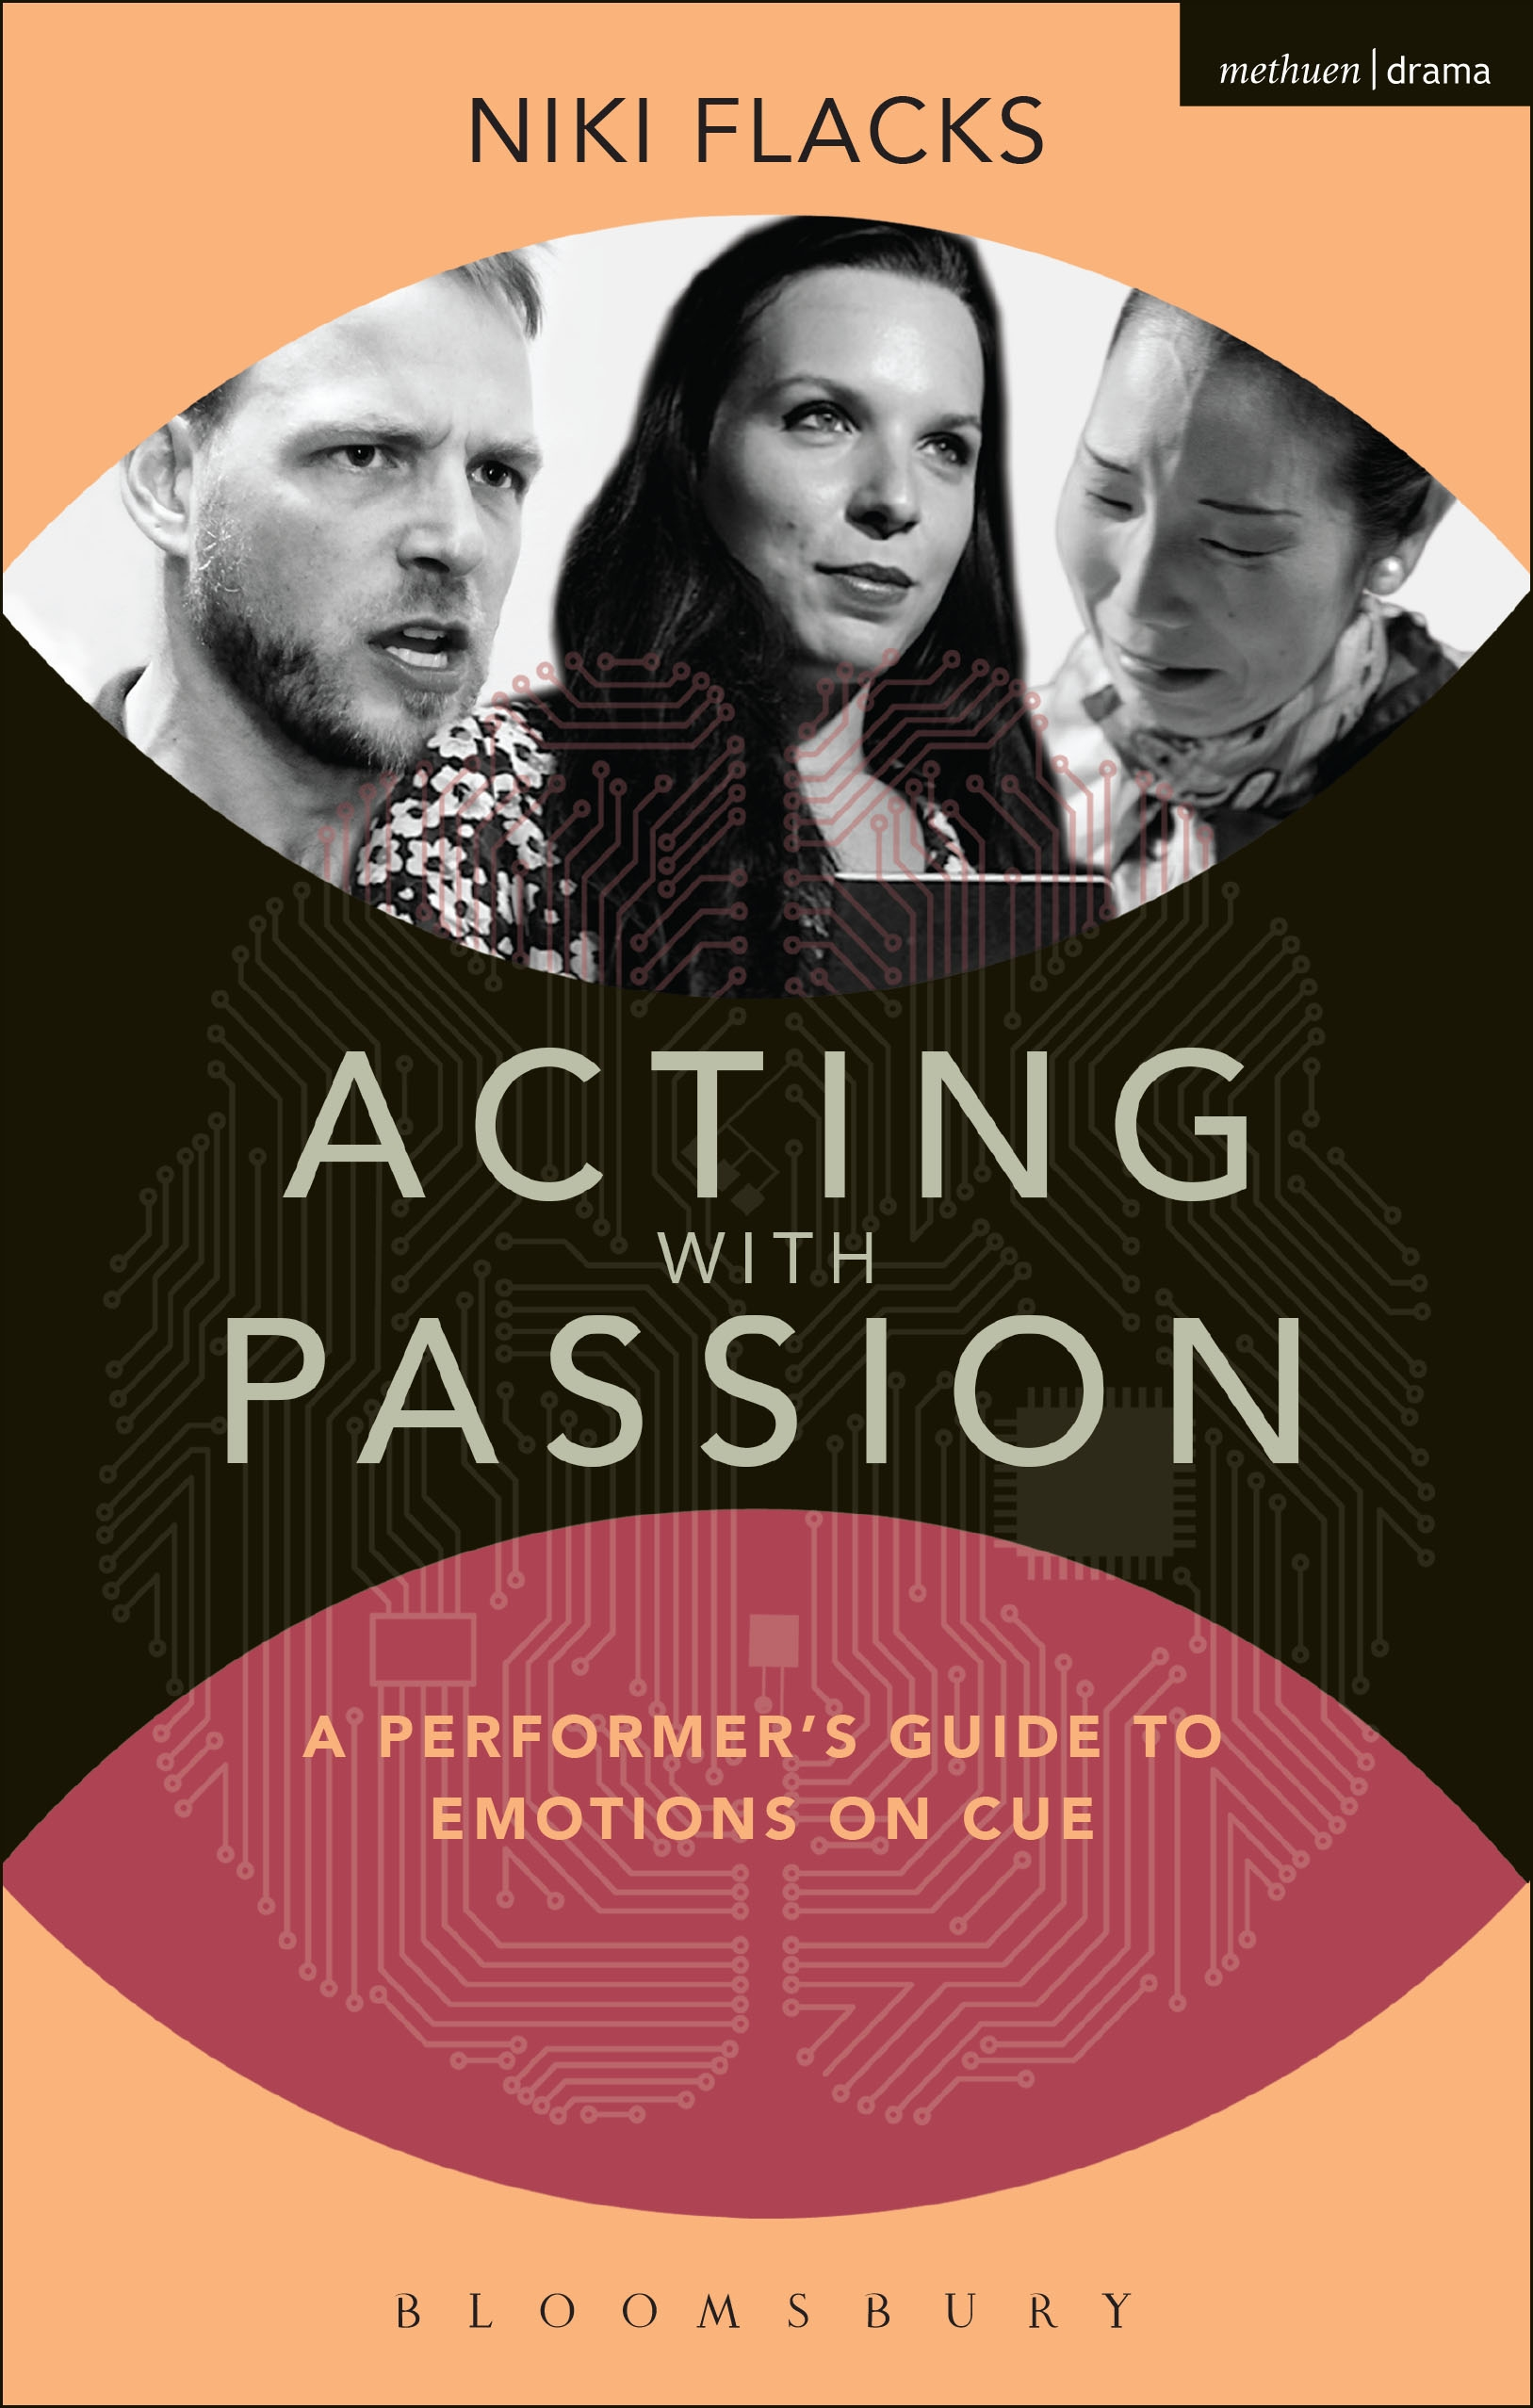 Book Review: Acting with Passion by Niki Flacks